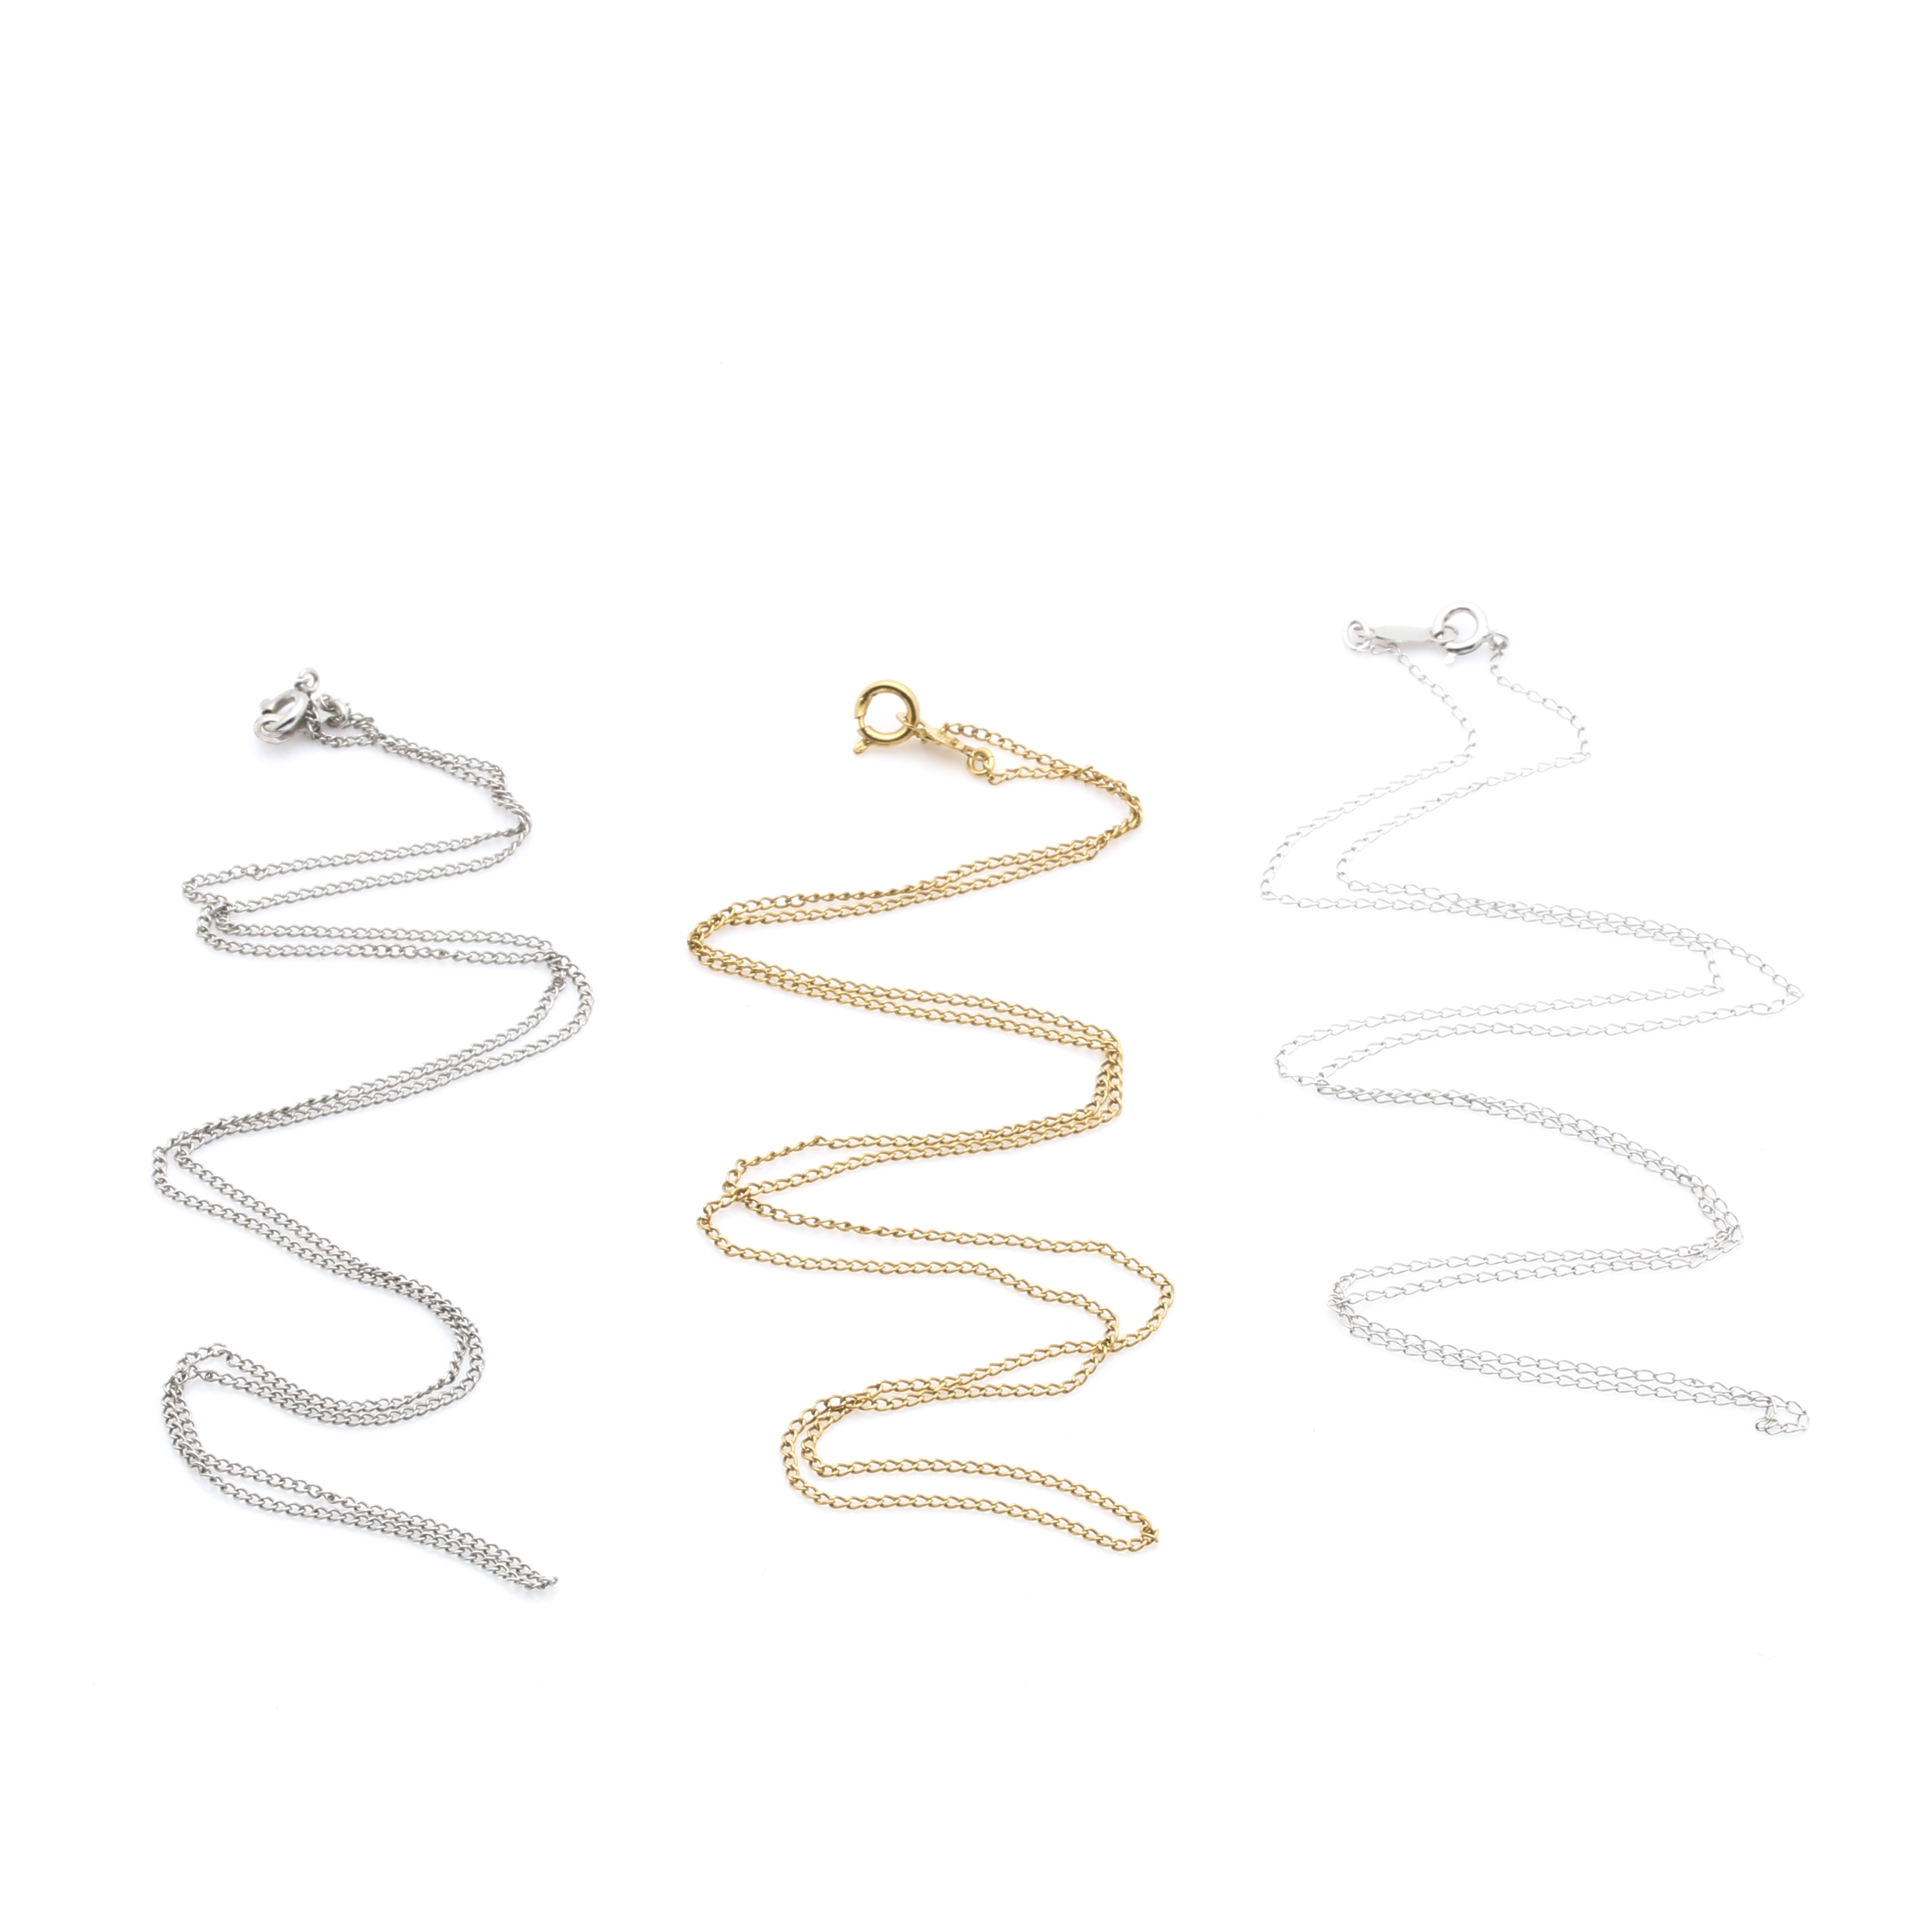 Assortment of 10K White and Yellow Gold Necklaces